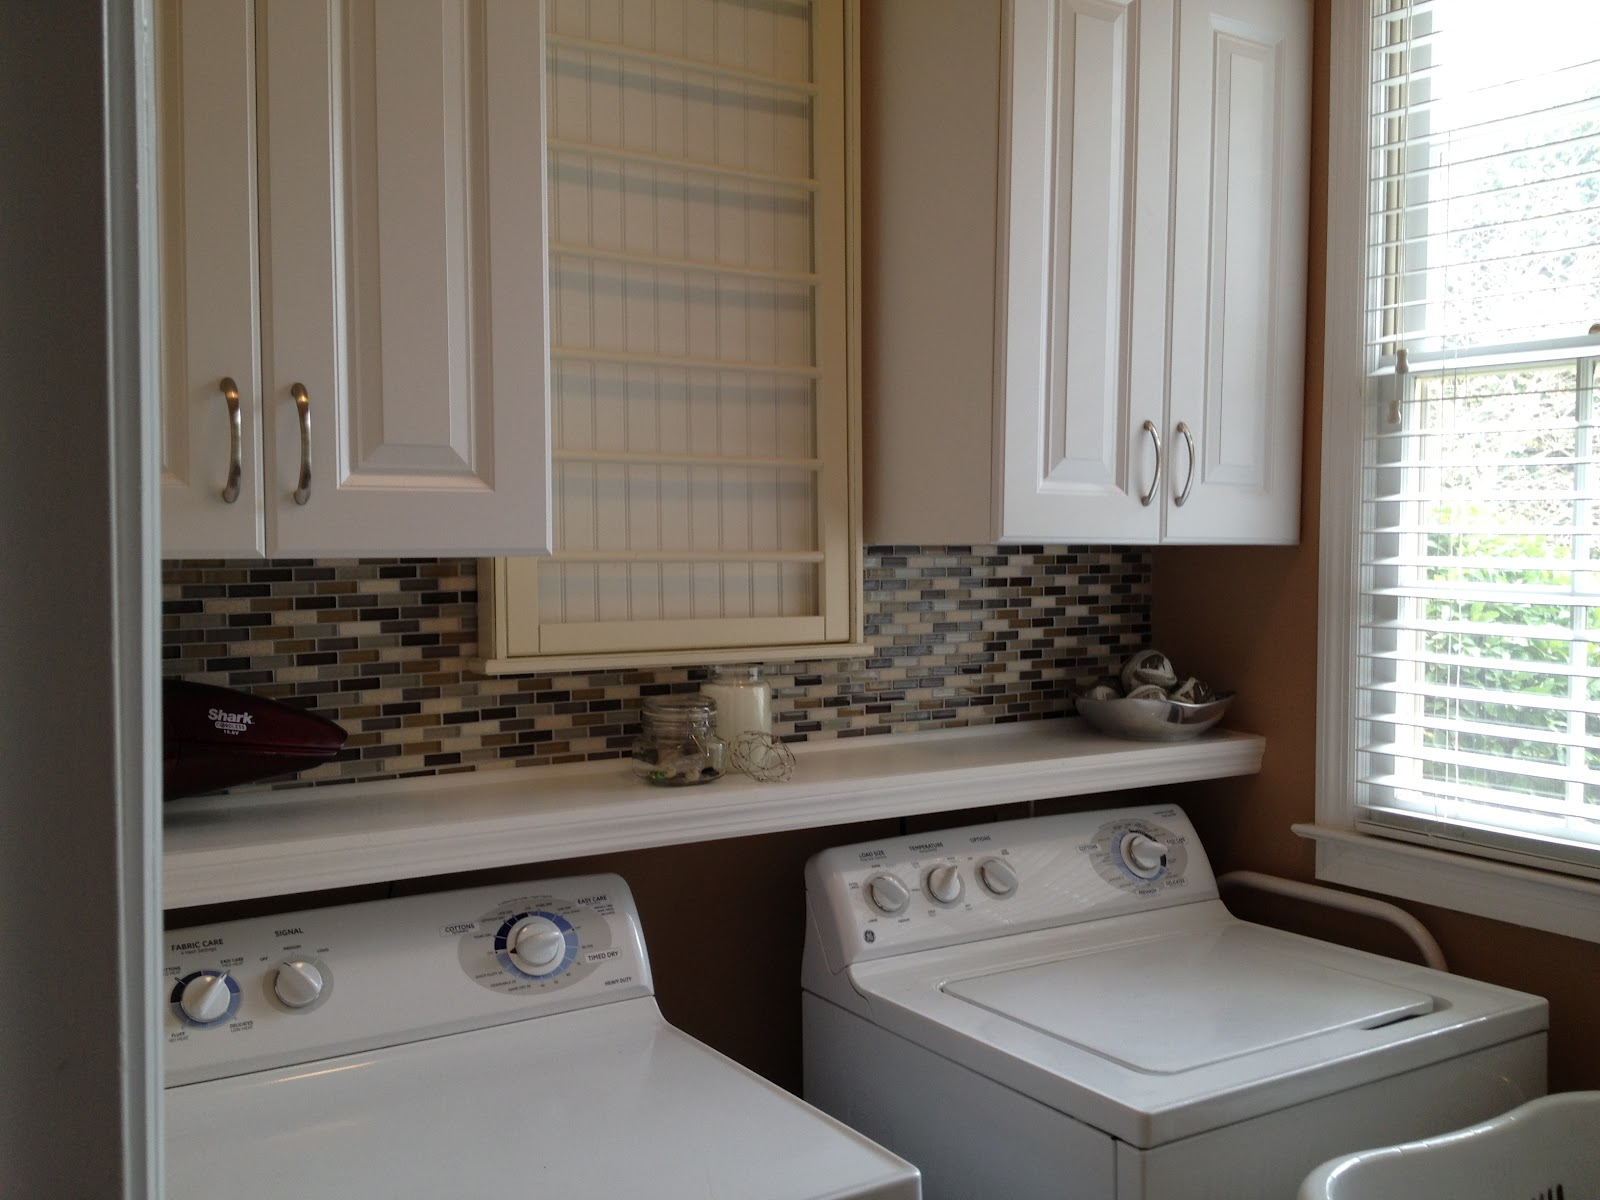 CasaLupoli: Laundry Room Update: Glass Mosaic Backsplash